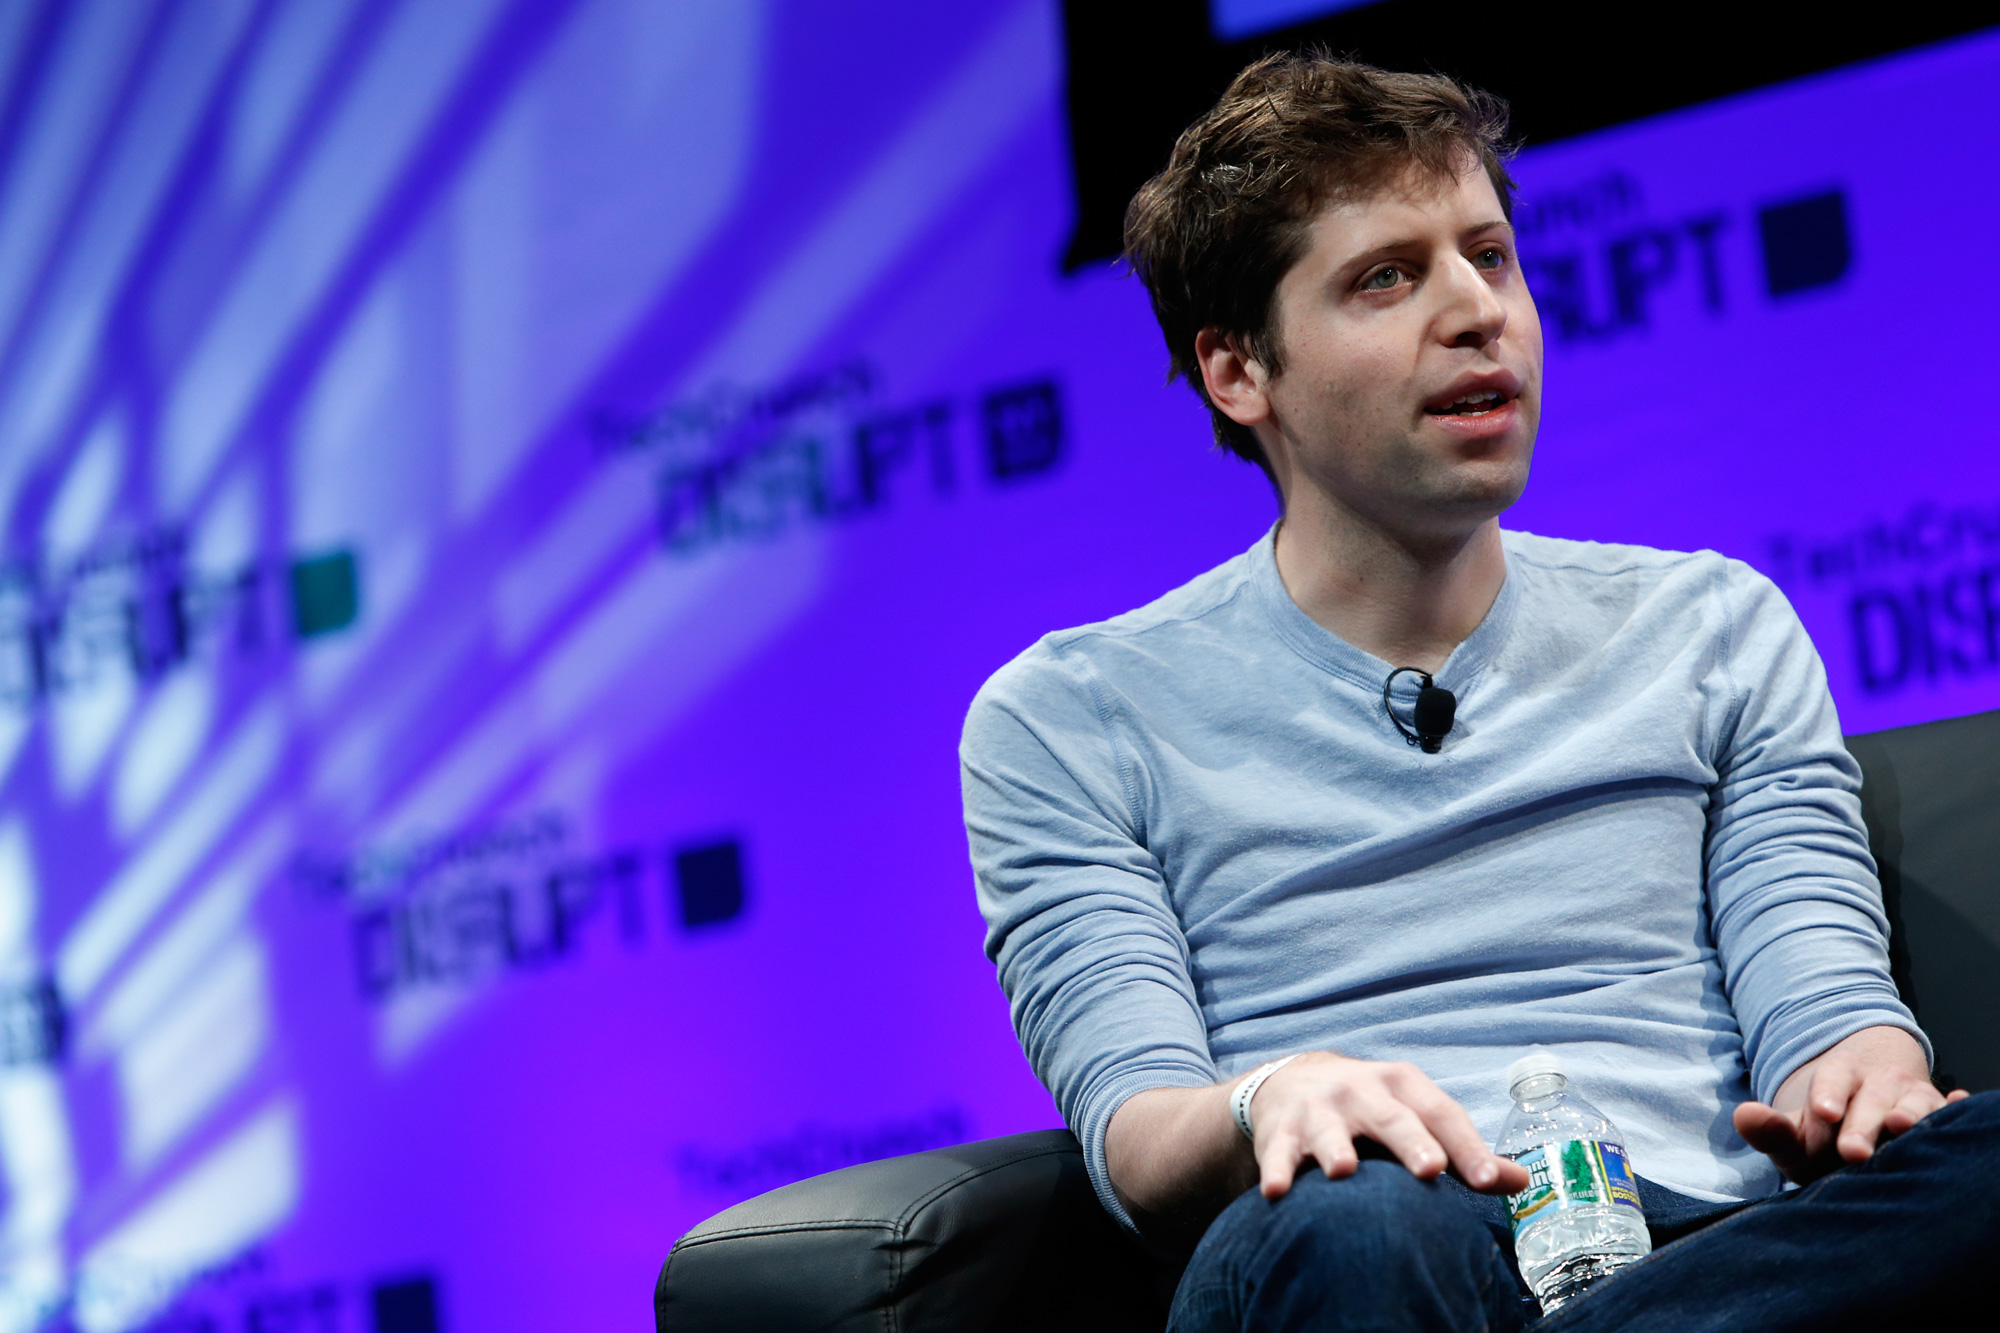 Y Combinator's Sam Altman is a big booster of the idea of a basic income.